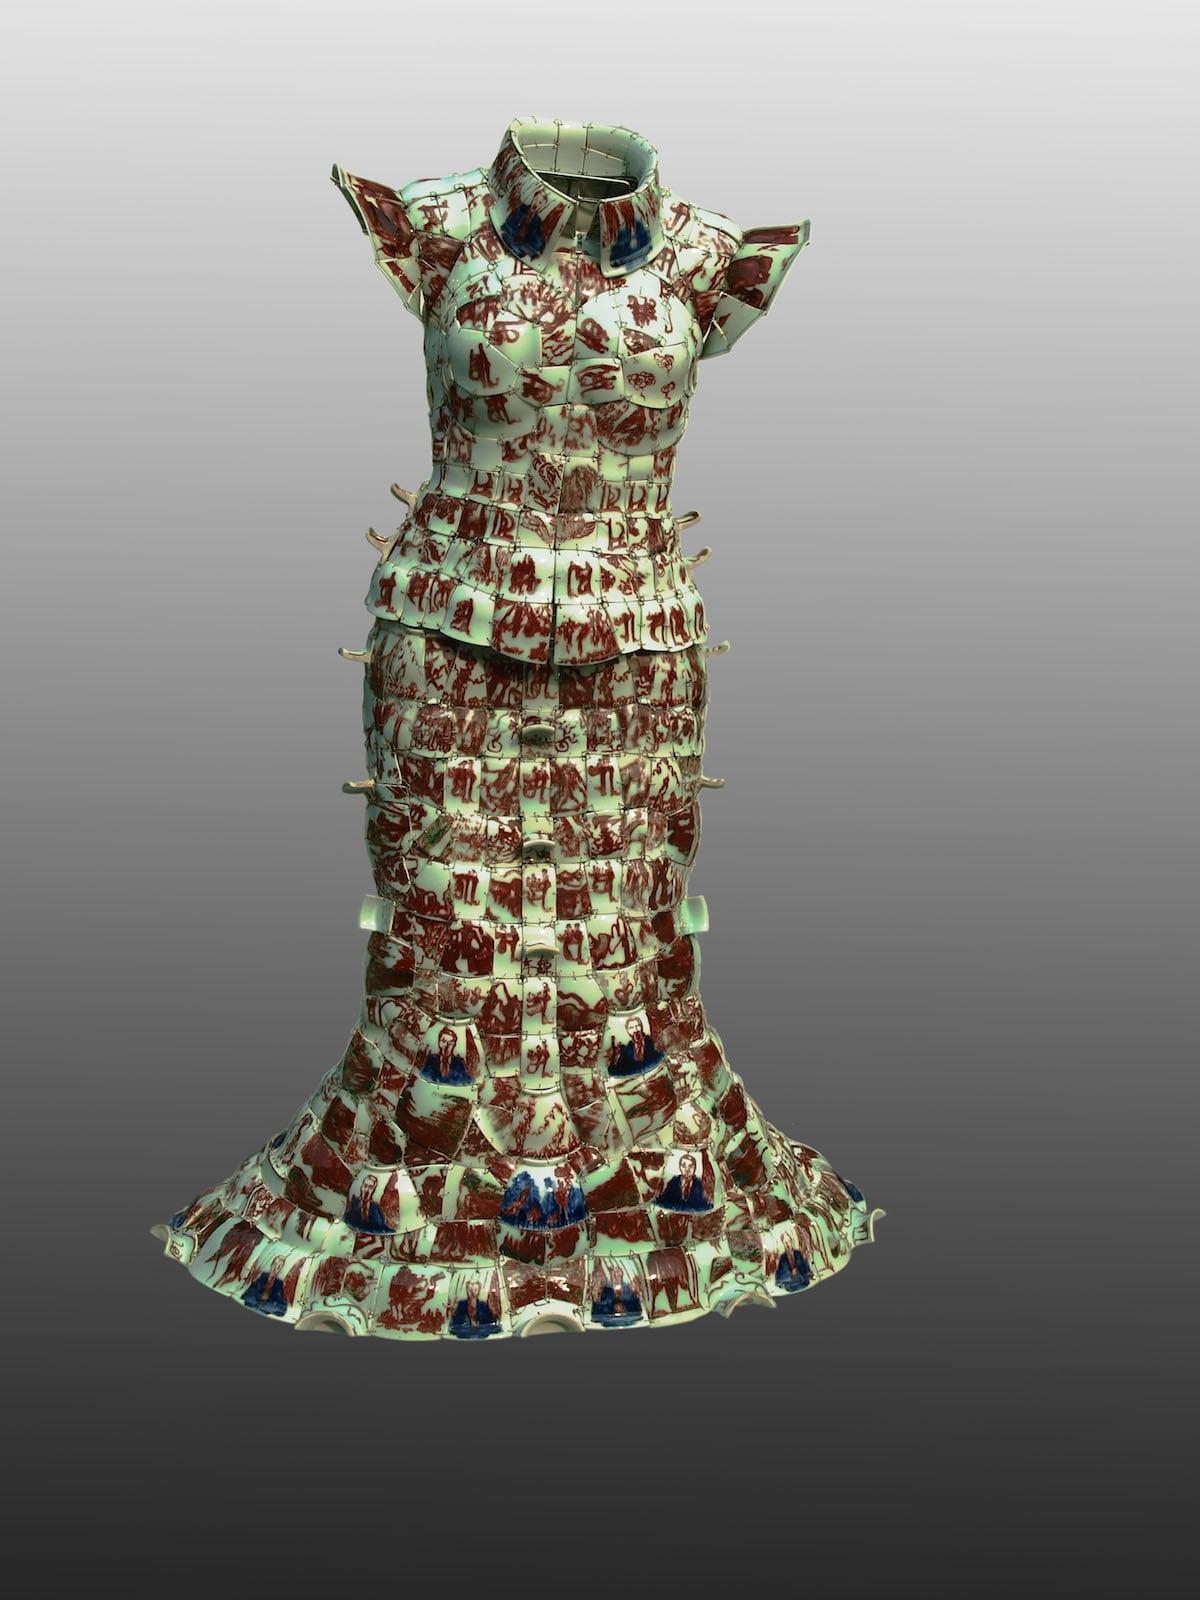 Porcelain Dress by Li Xiaofeng